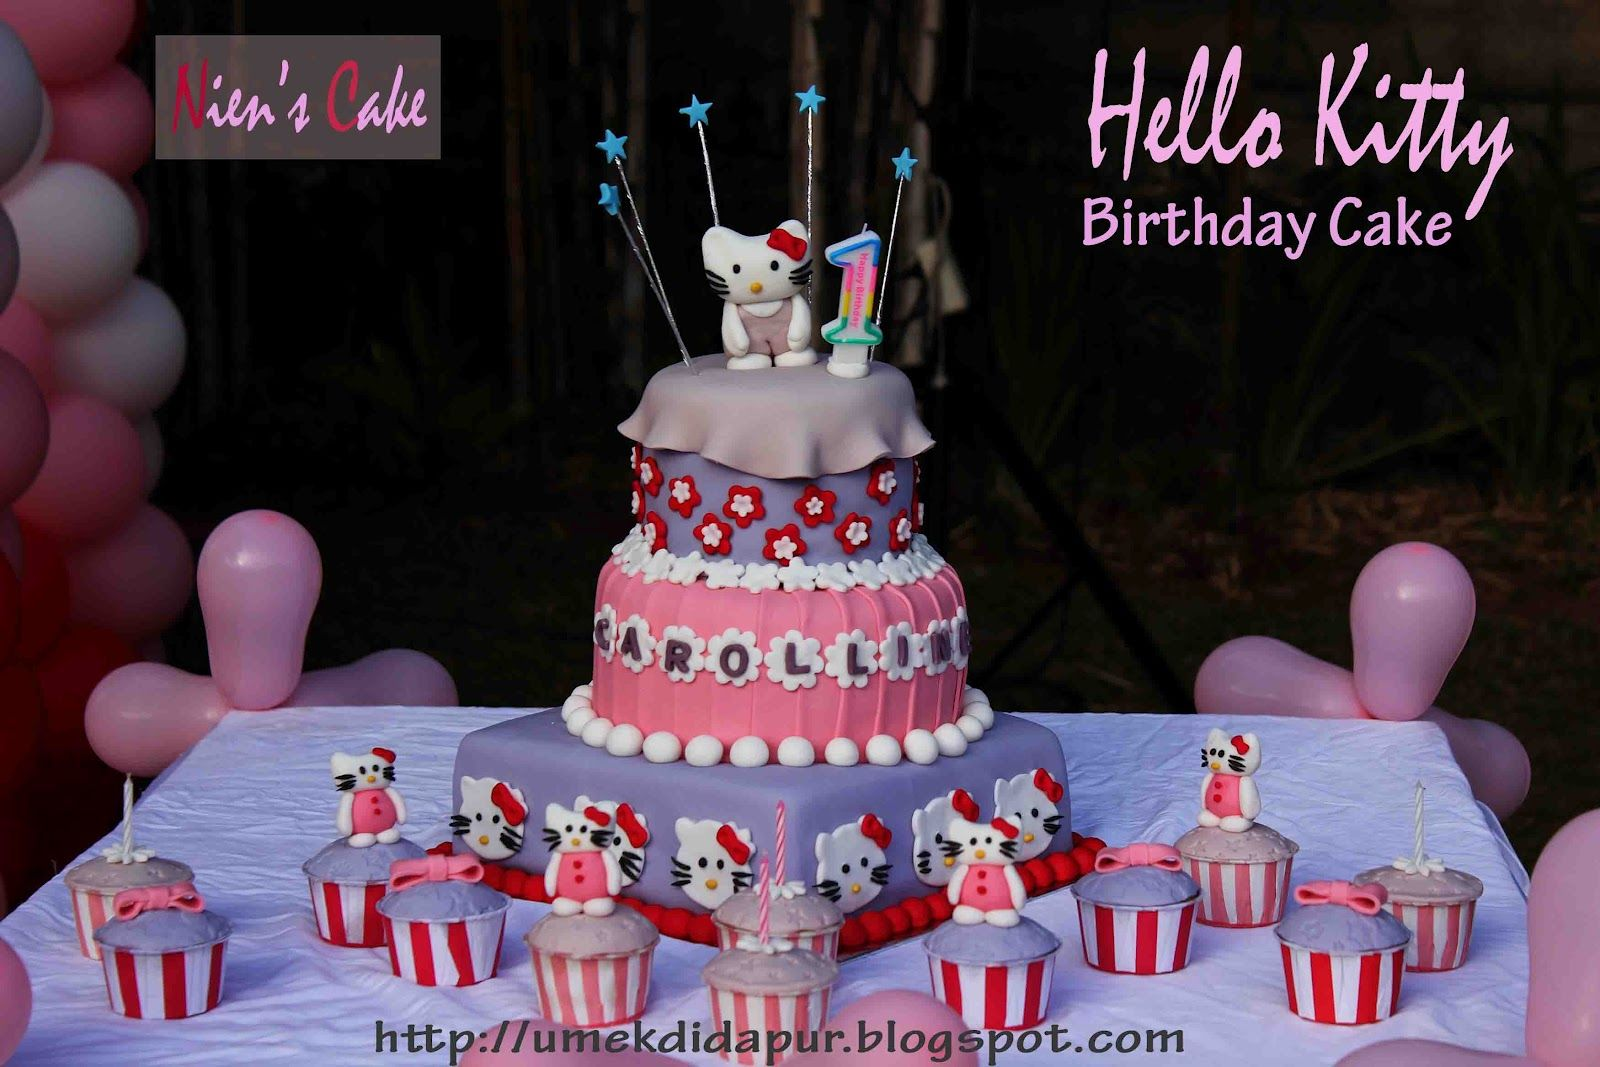 Wallpaper download birthday cake - Write Your Name On Anniversary Cakes Pictures Online Edit Birthday Cake Pic With Name Wallpapers Wallpapers